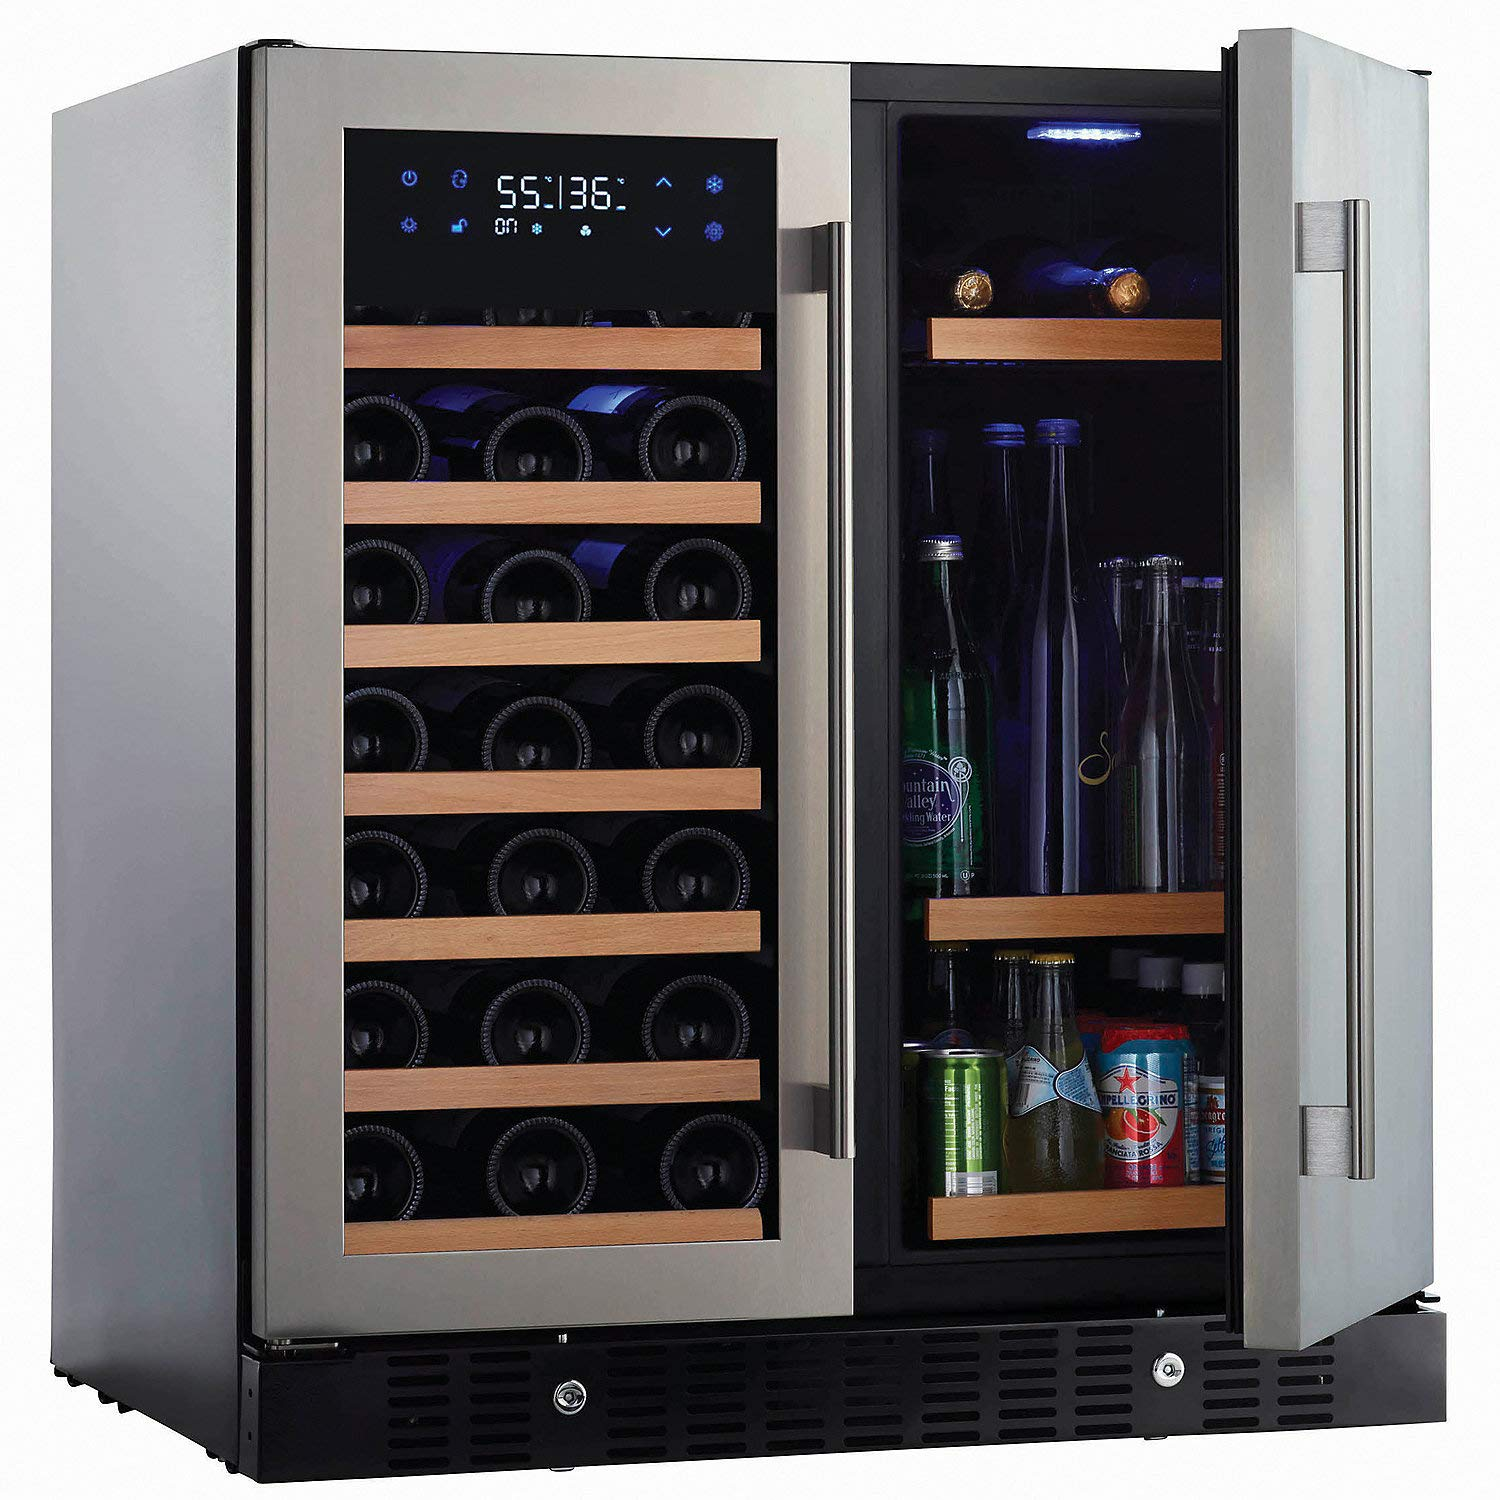 N FINITY PRO HDX by Wine Enthusiast Wine Beverage Center Holds 90 Cans 35 Wine Bottles Freestanding or Built-In Wine Refrigerator